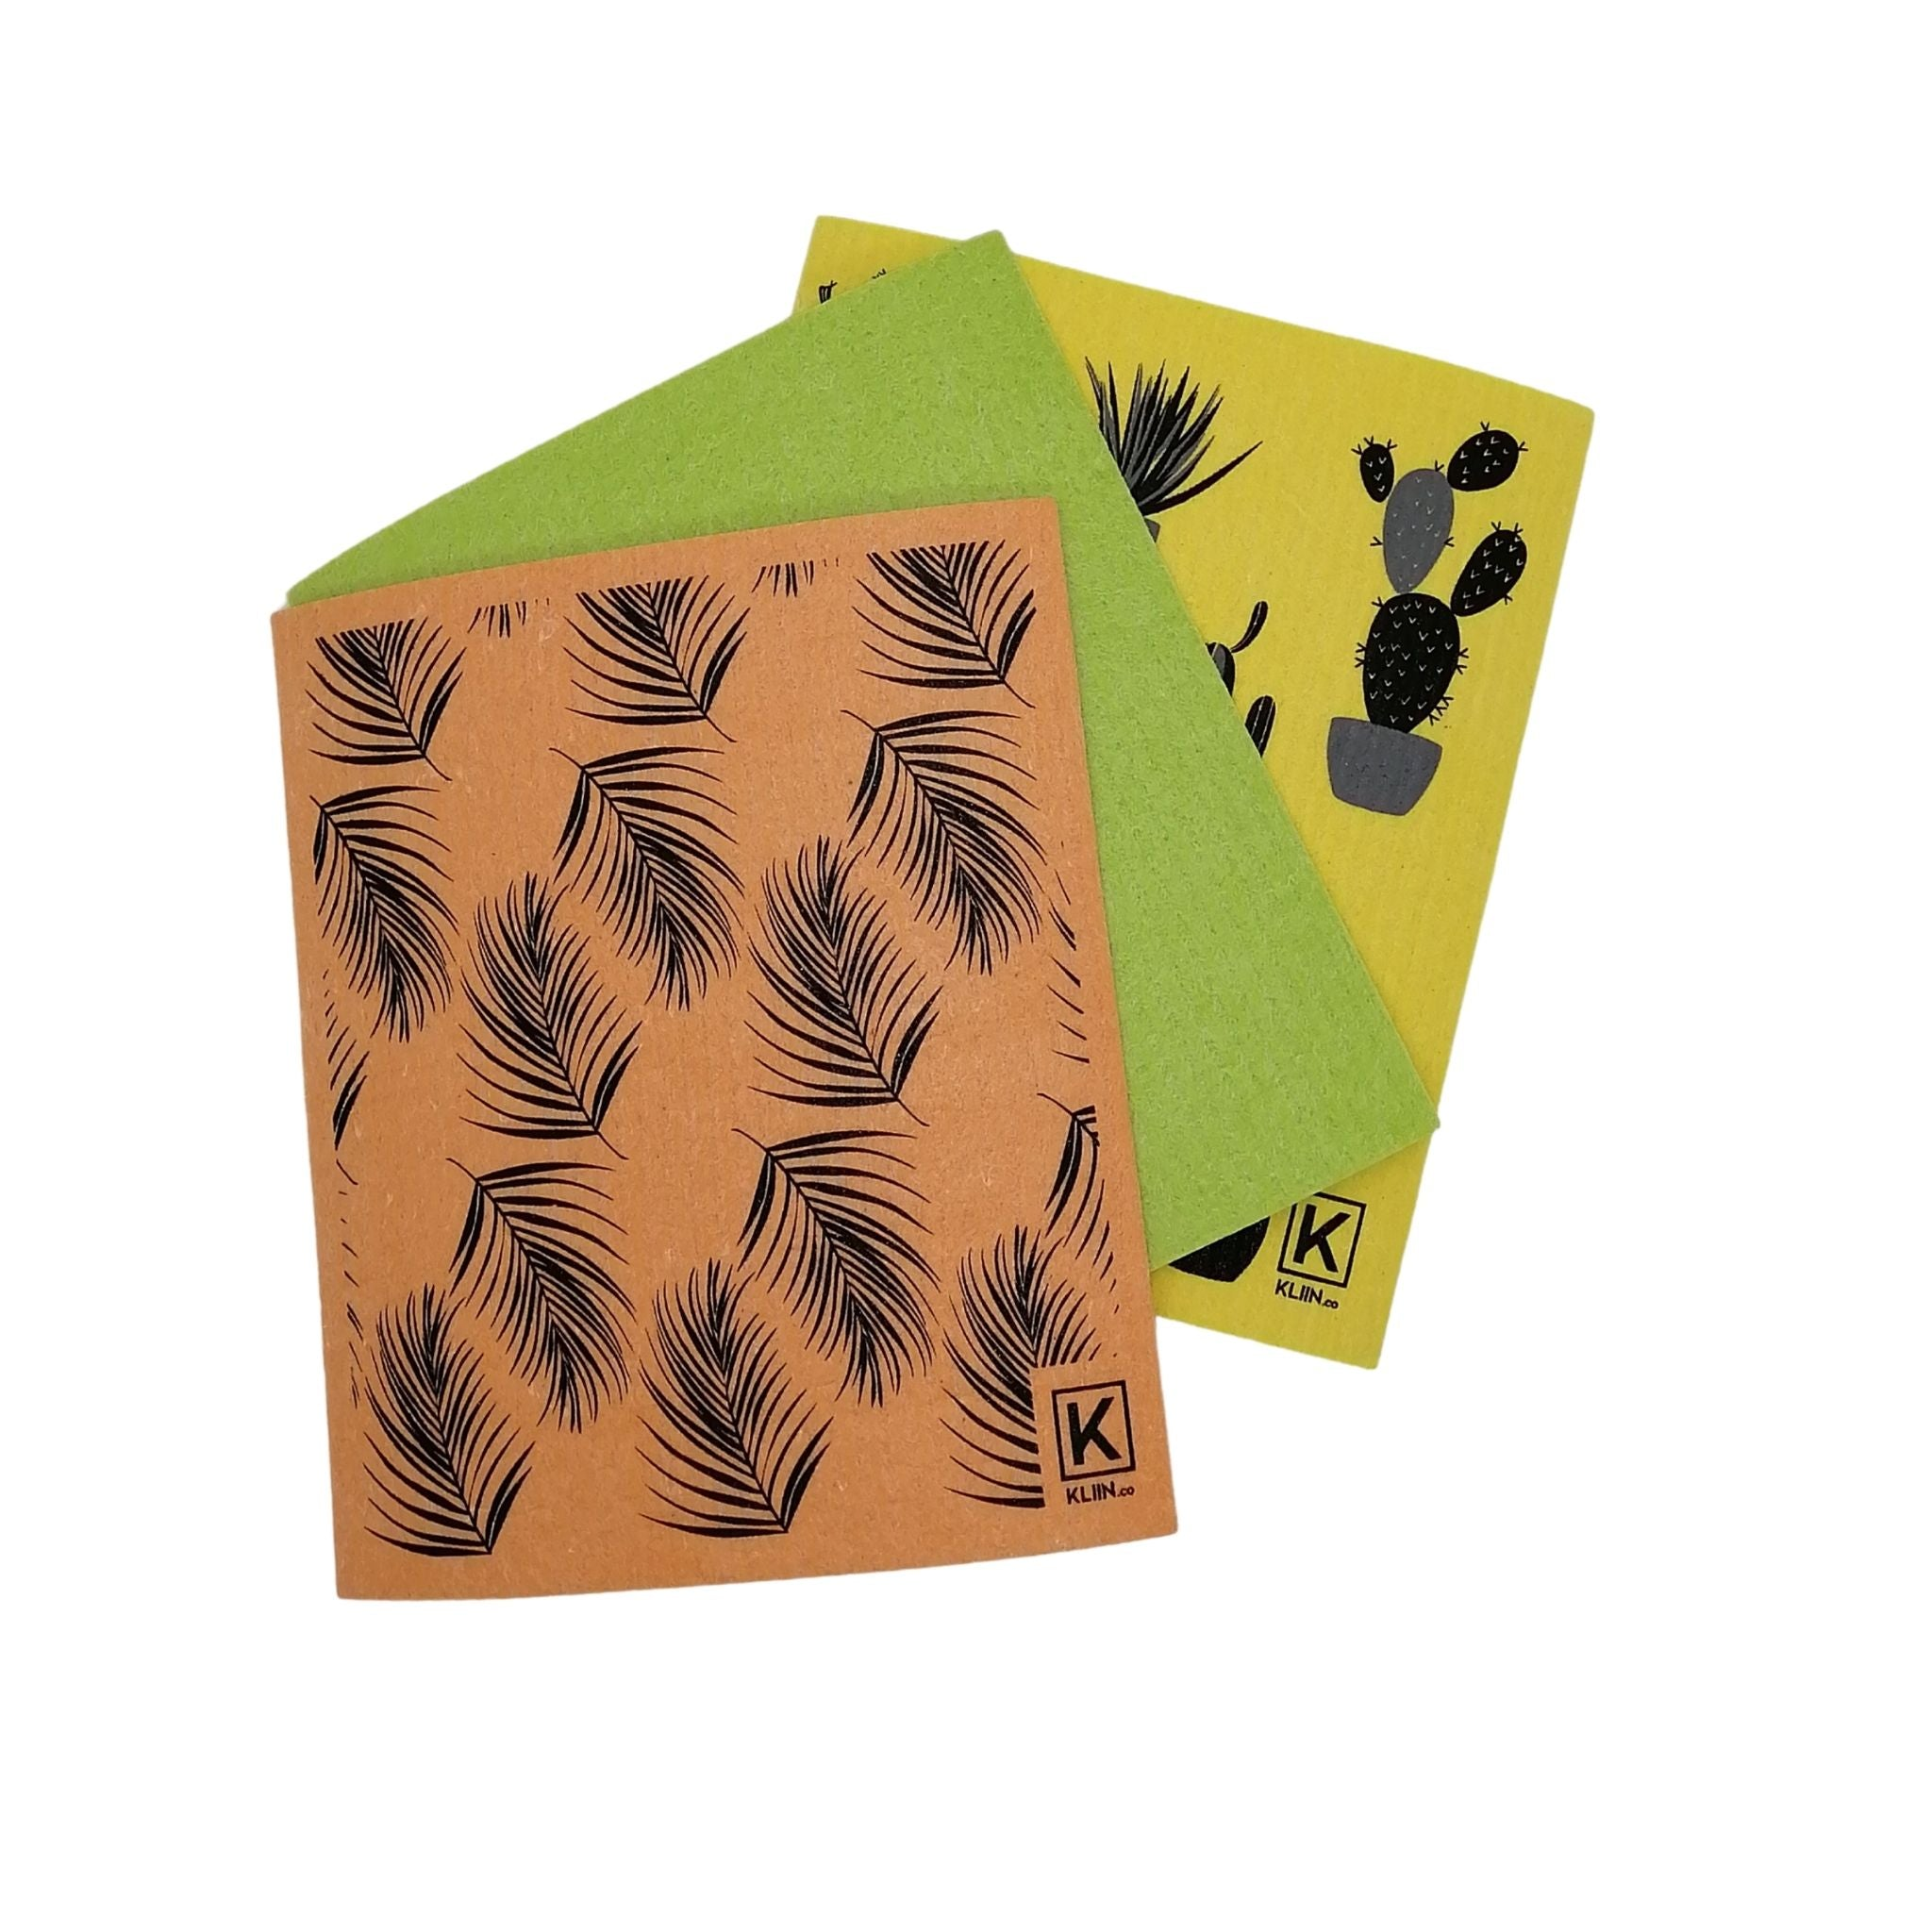 kliin reusable paper towel foliage set laid out yellow towel with potted plant graphic, solid lime green towel, and light orange towel with leaf graphic